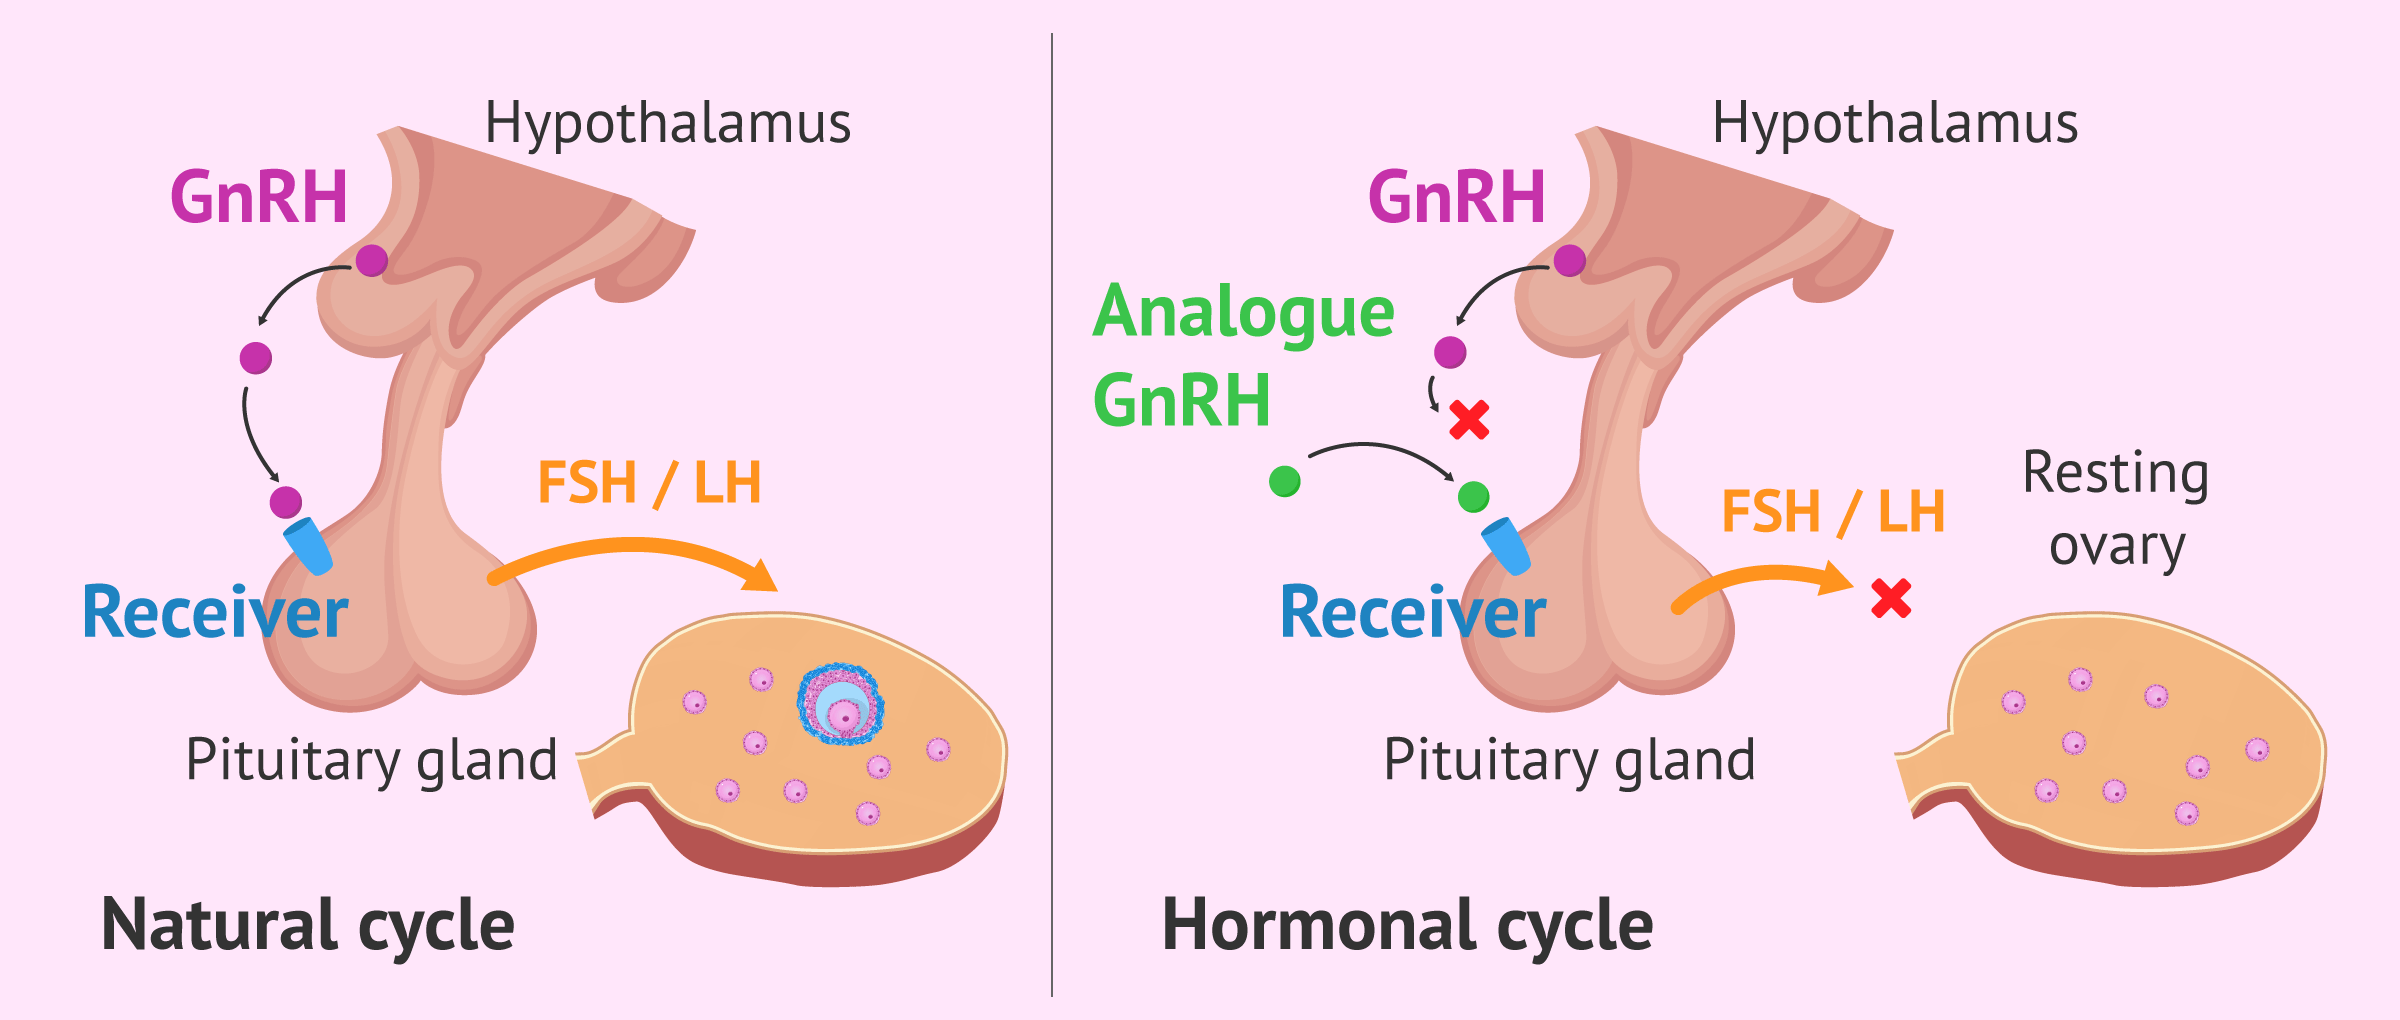 Operation of the GnRH analogs